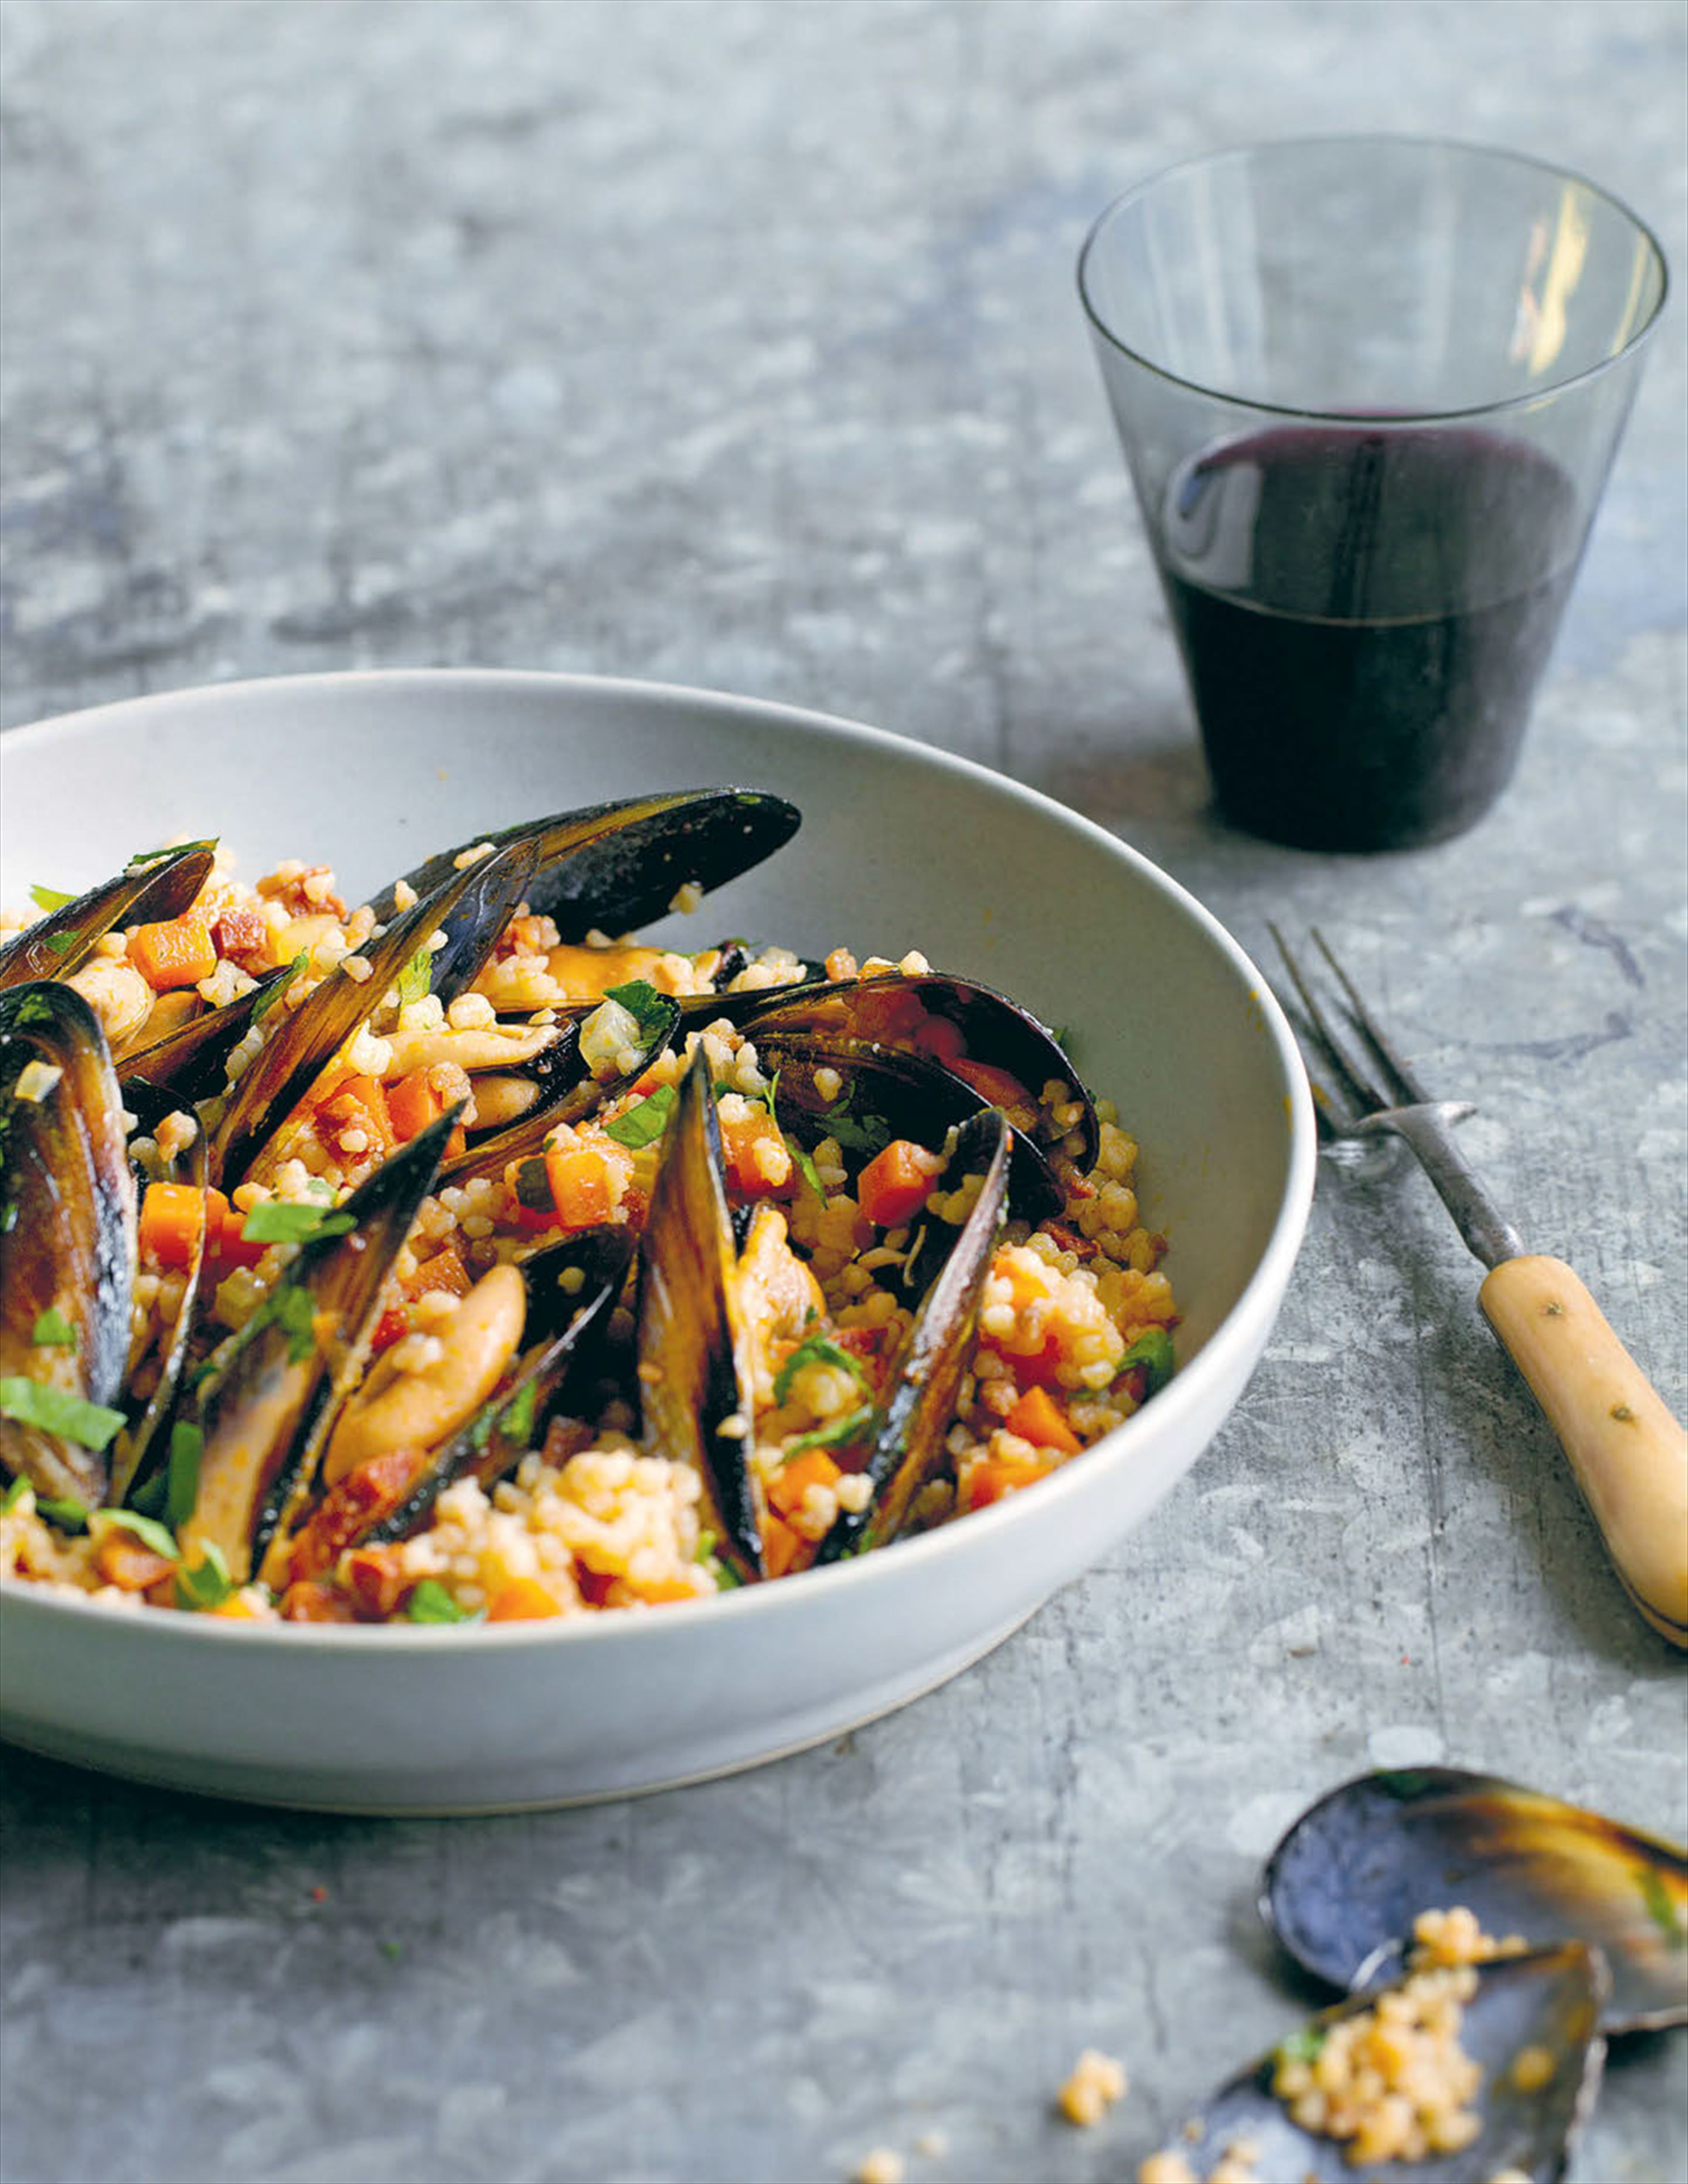 Warm salad of fregola, chorizo and mussels